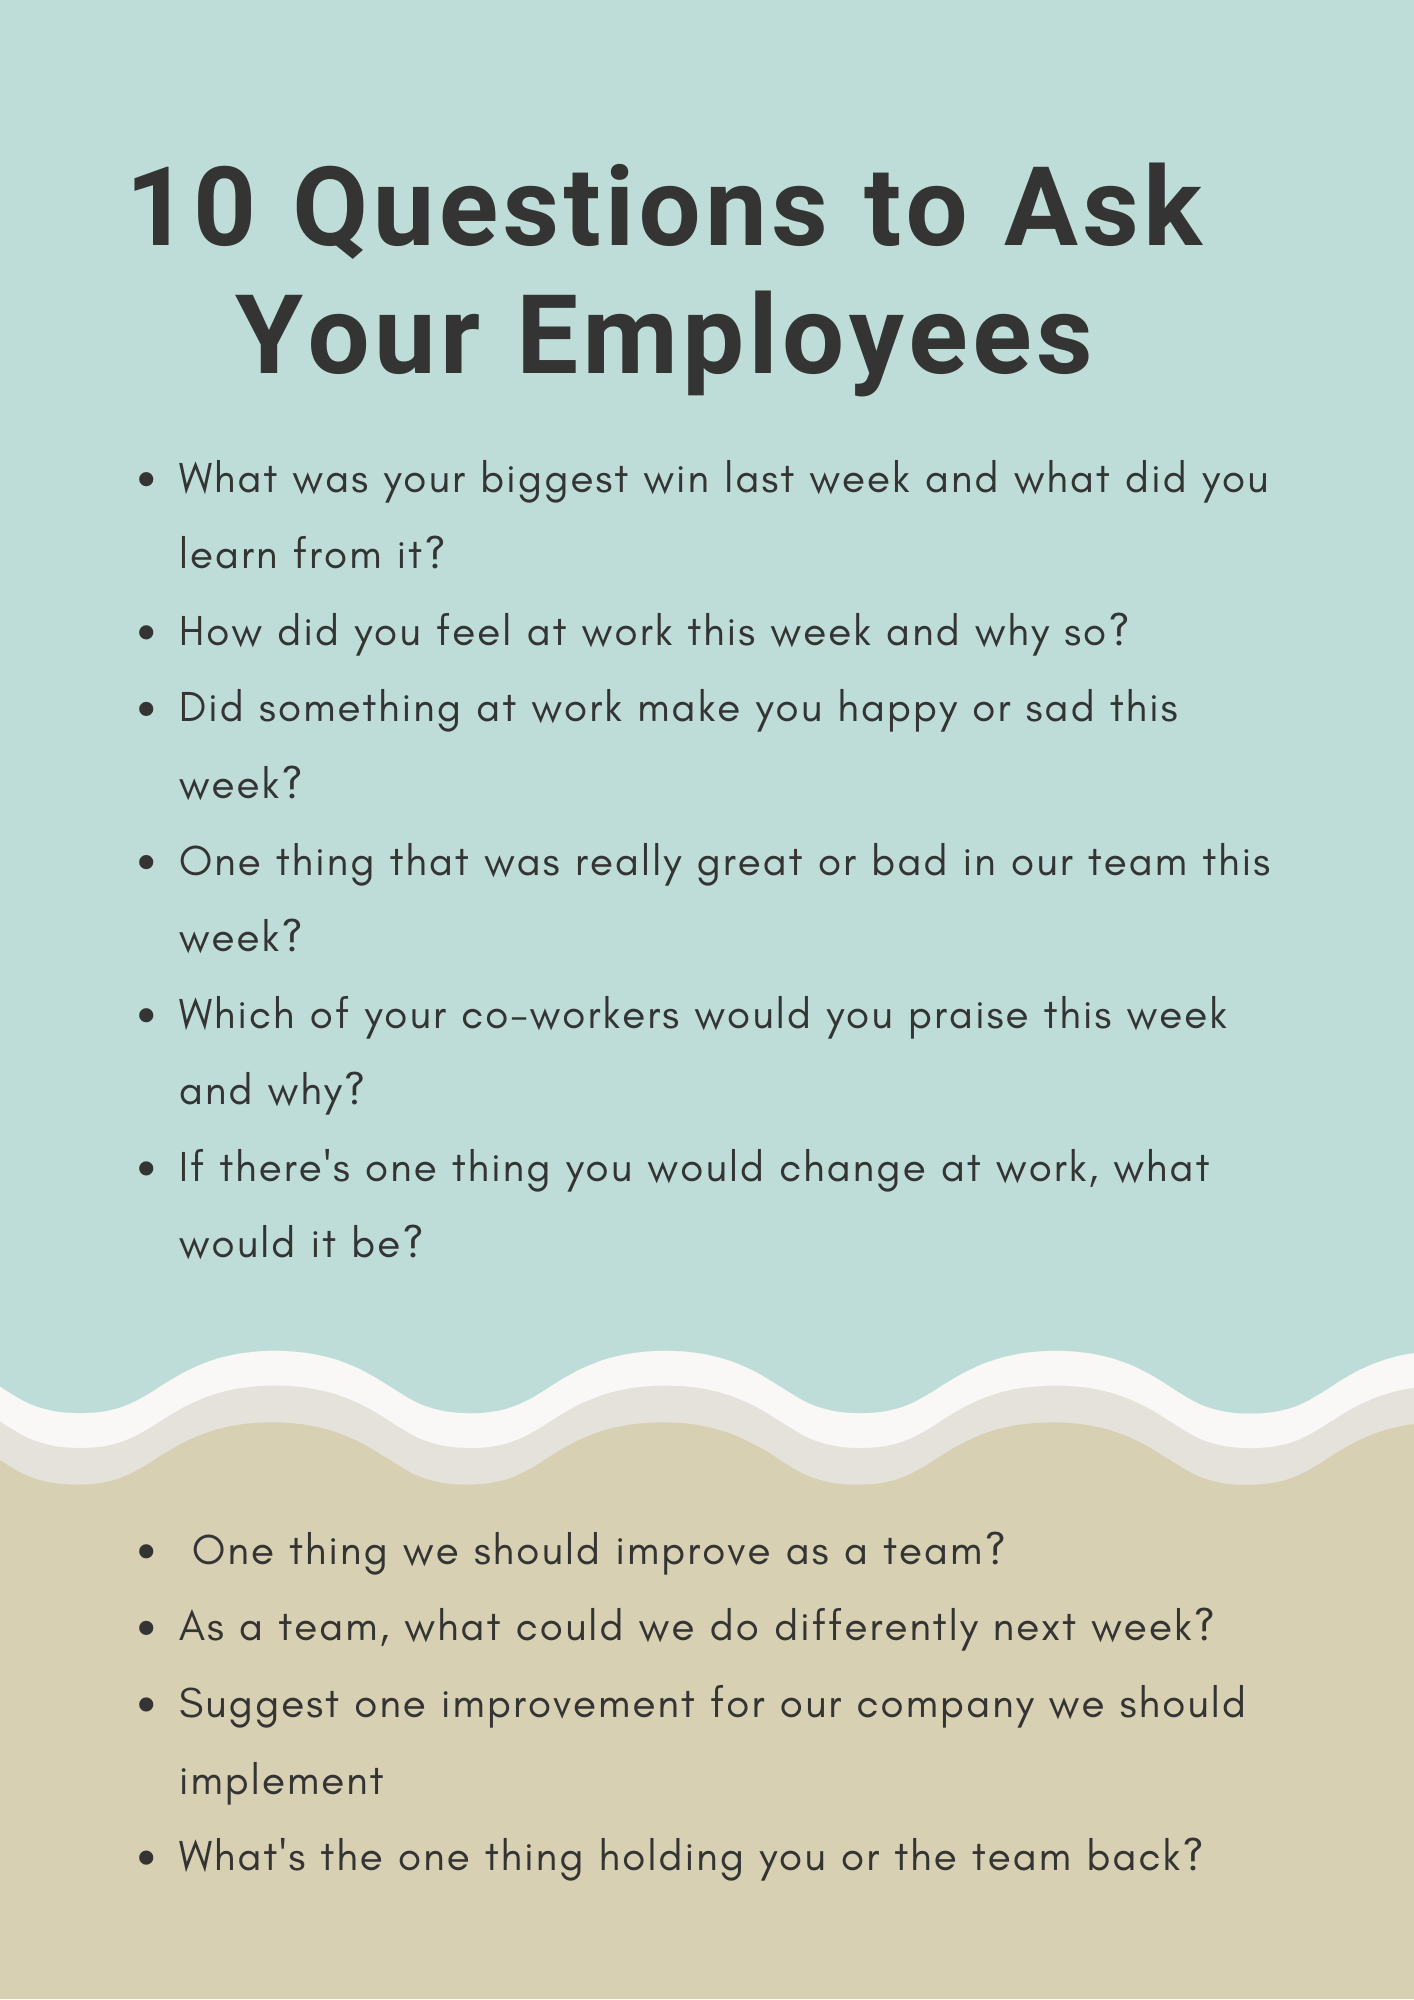 10 questions to ask your employees